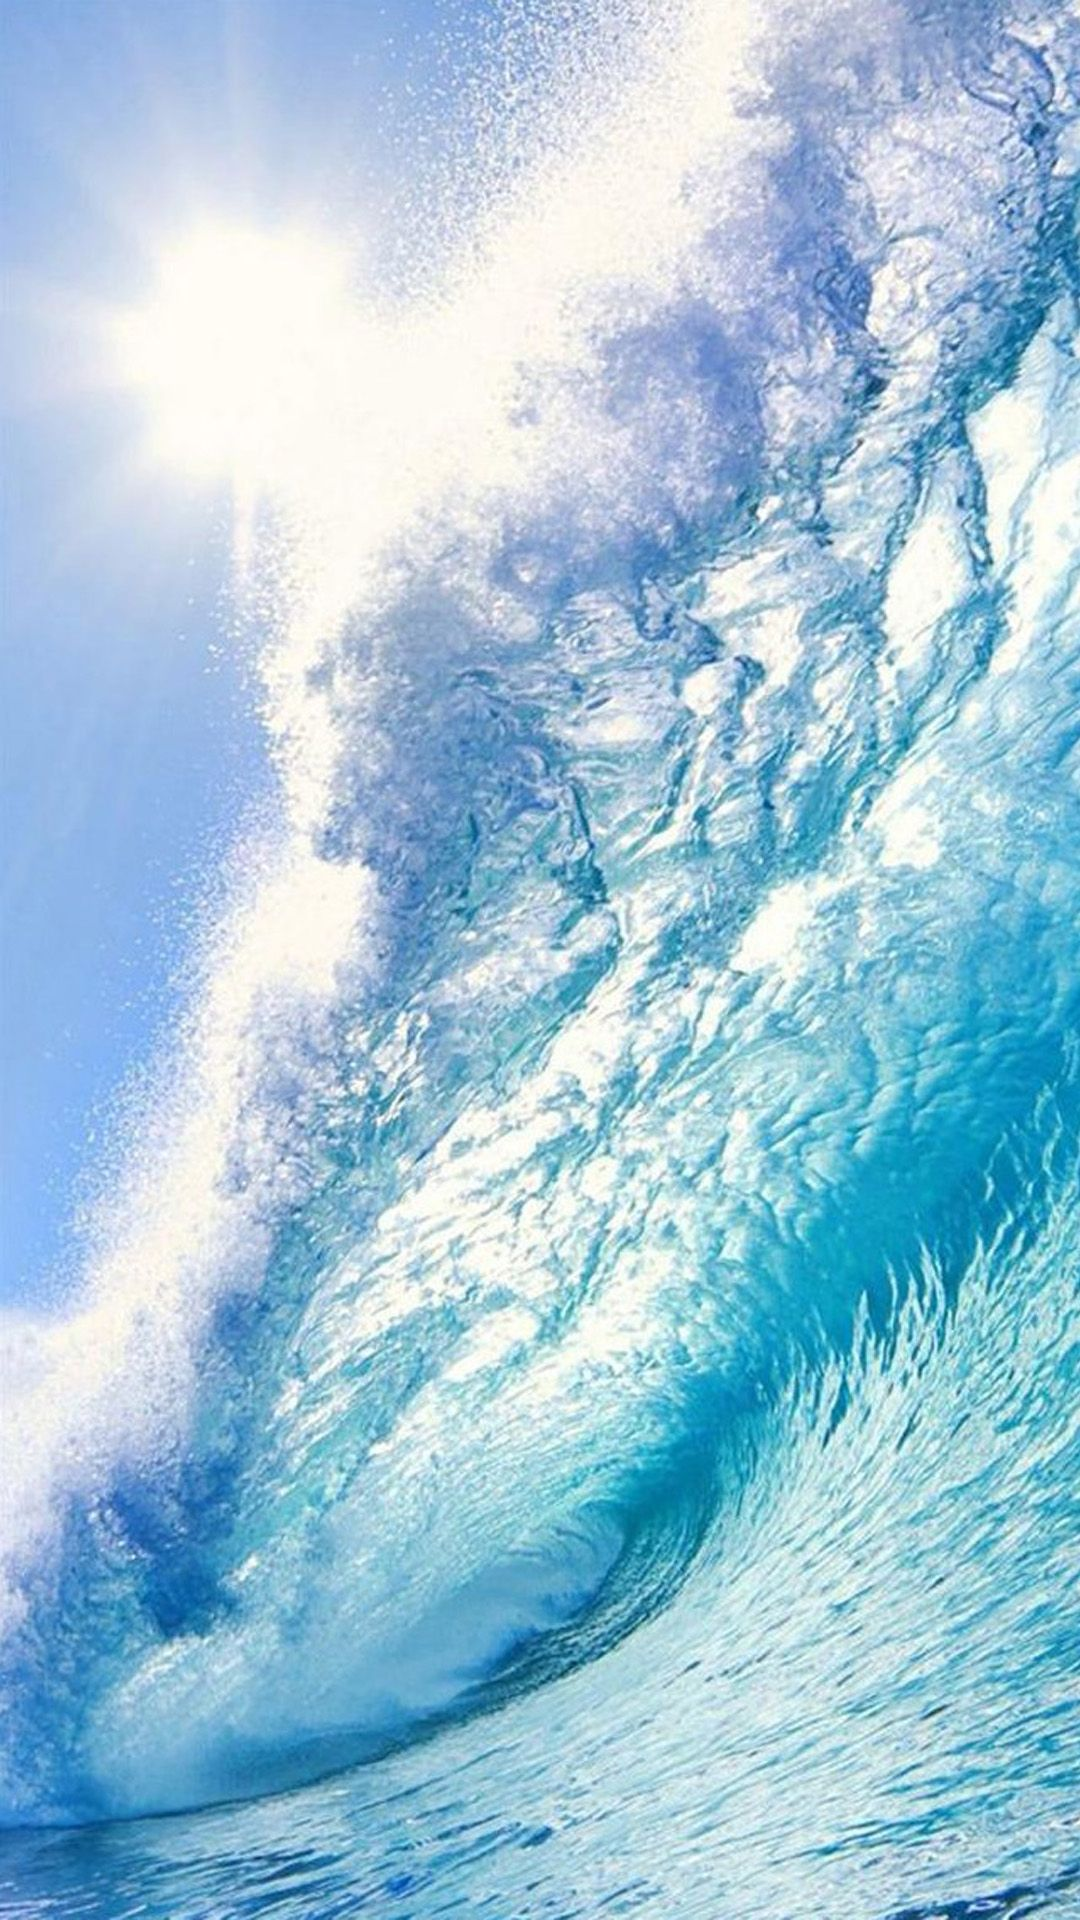 beach surf wave sea android wallpaper hd a· wallpaper appocean